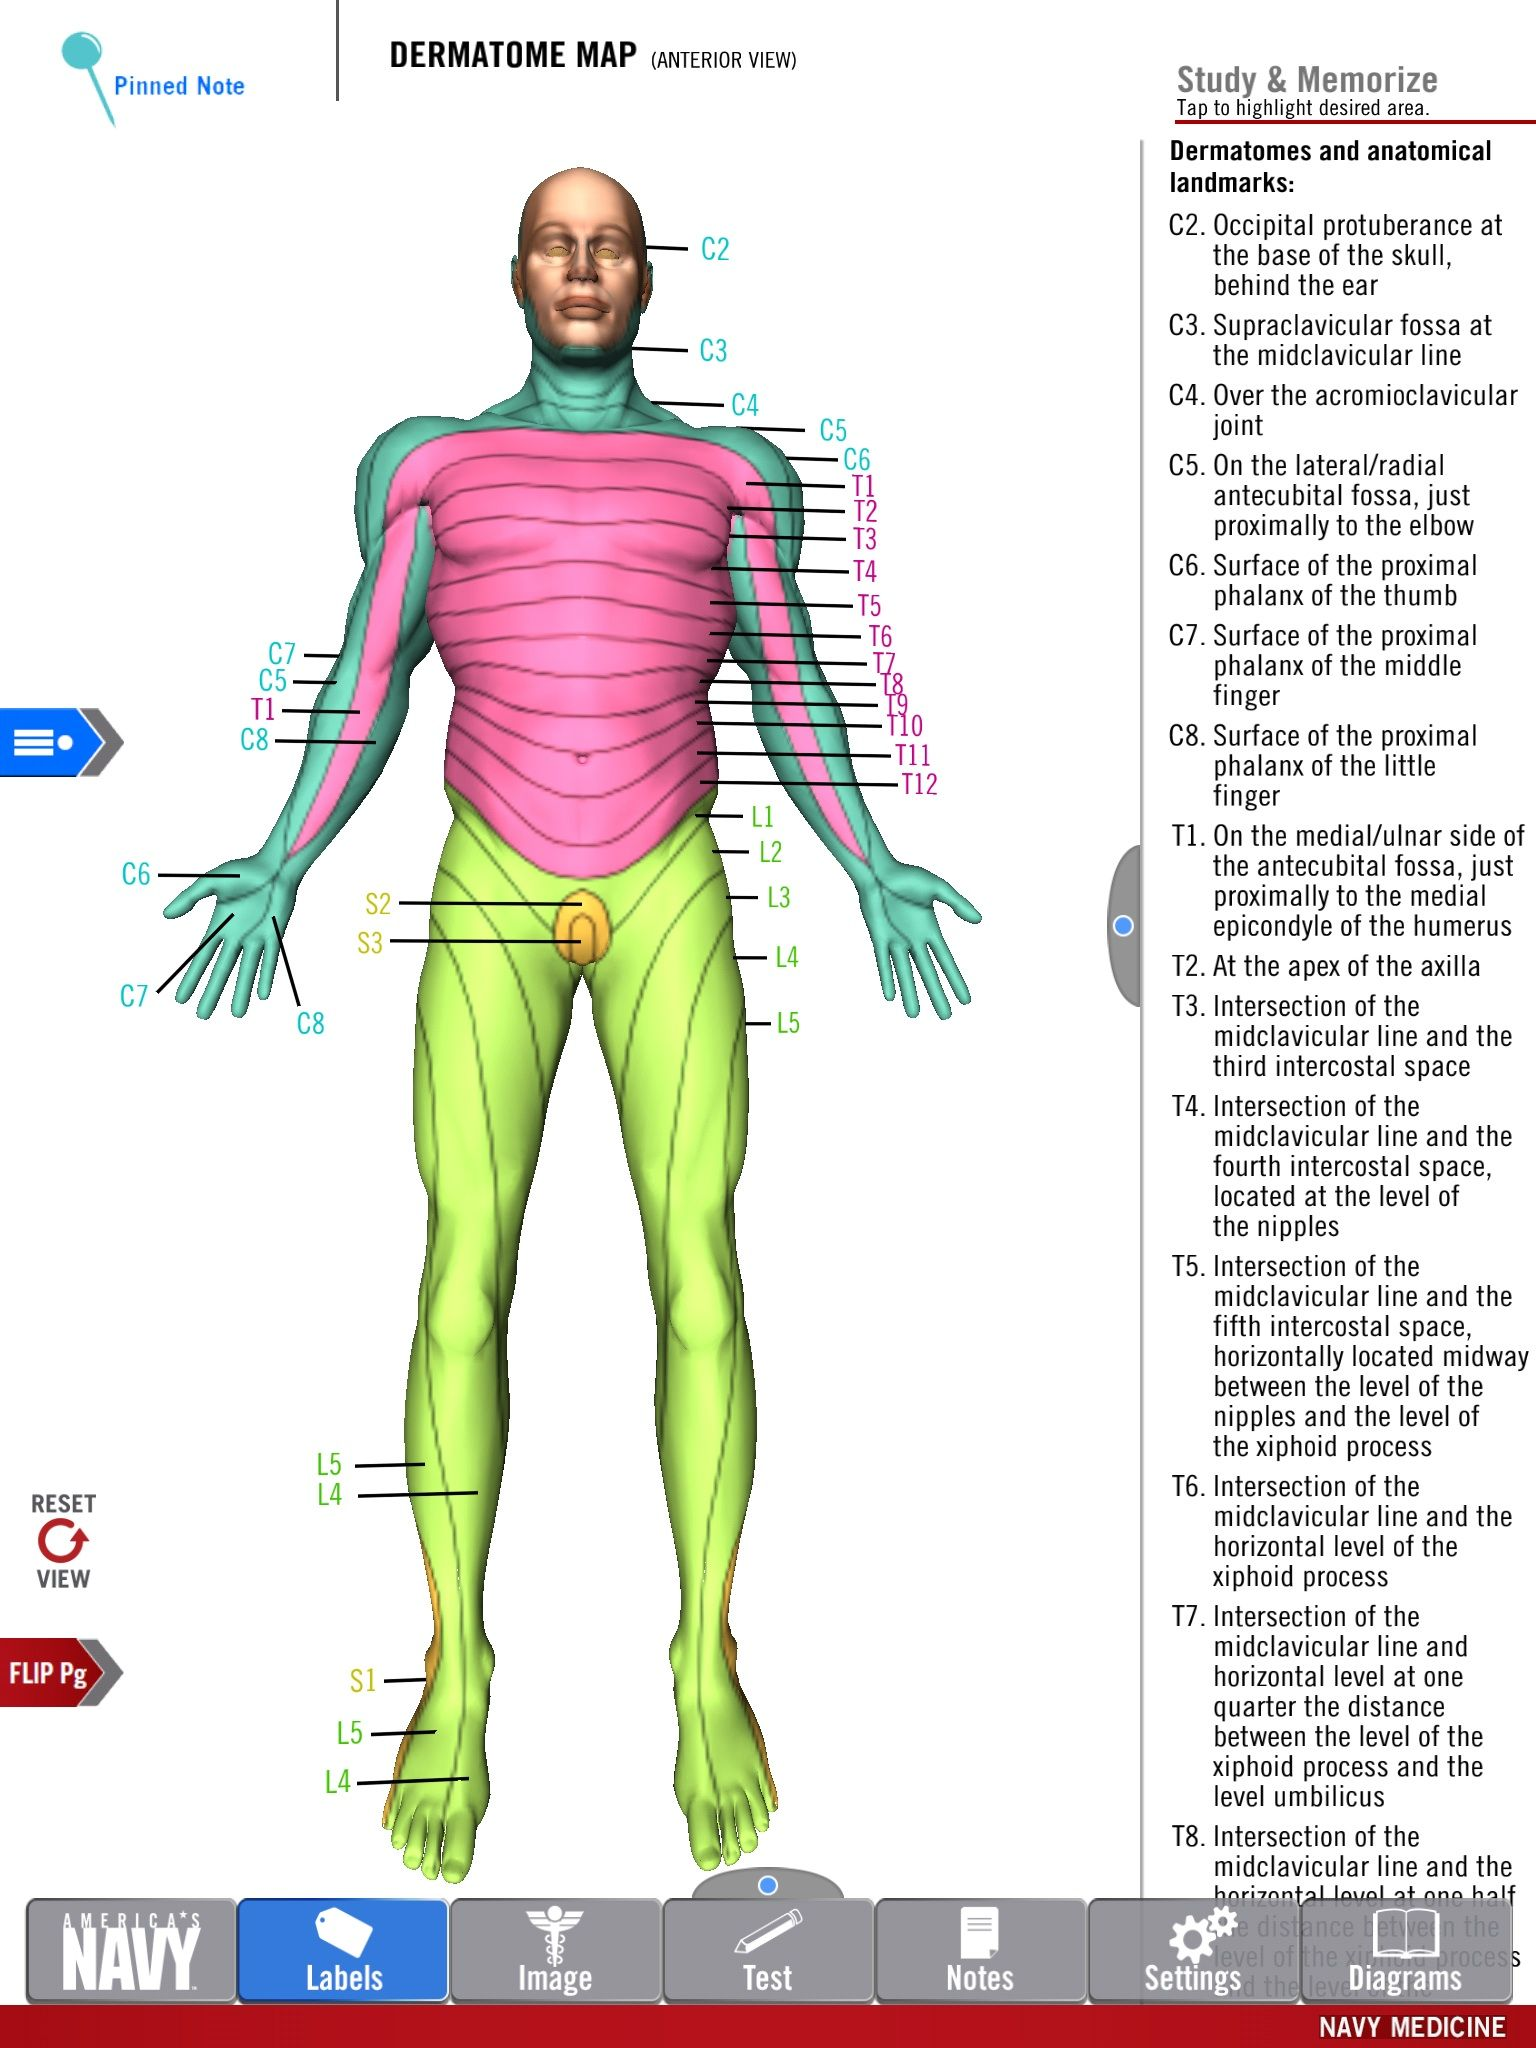 Diagram Of The Dermatome Map From The Free Anatomy Study Guide App